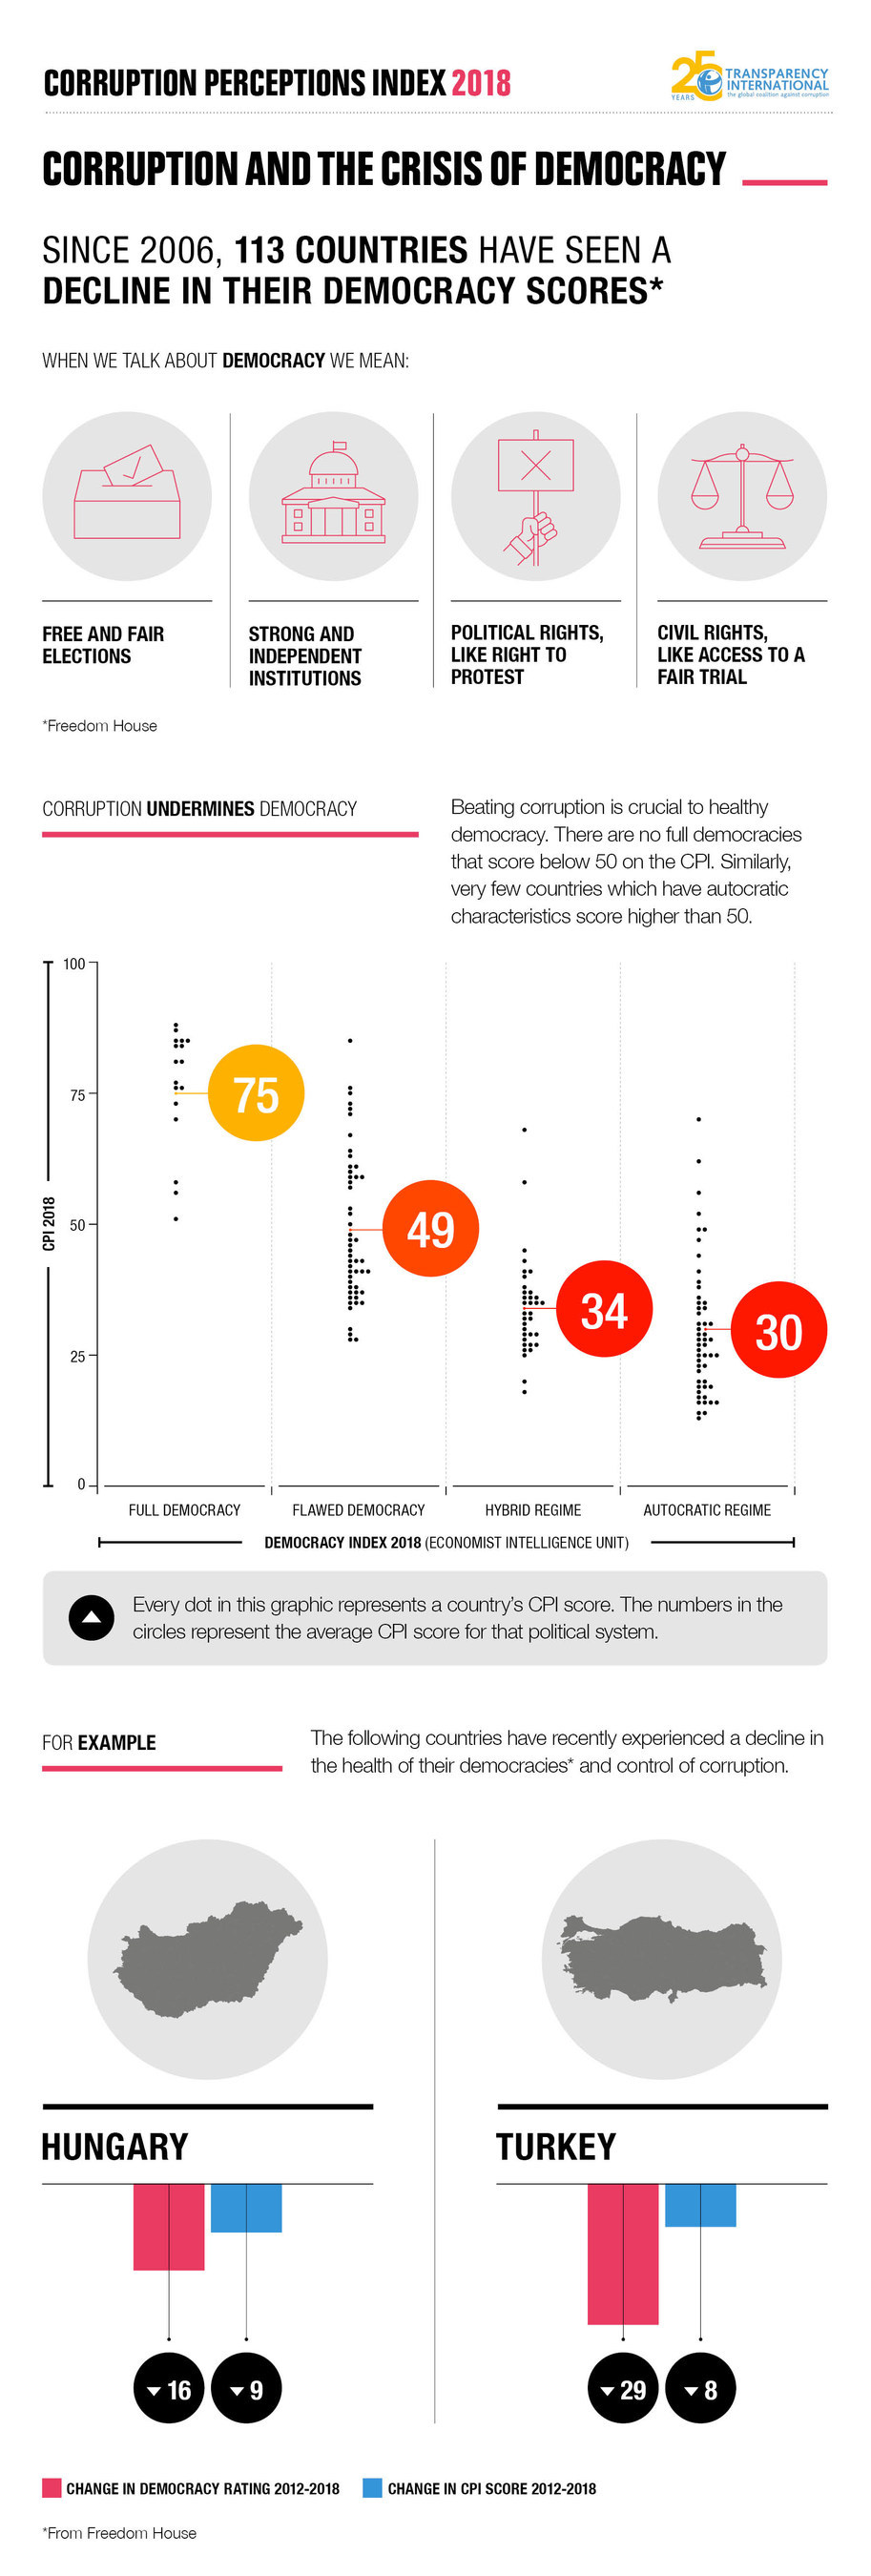 The 2018 Corruption Perceptions Index (CPI) - Global Infographic (3)